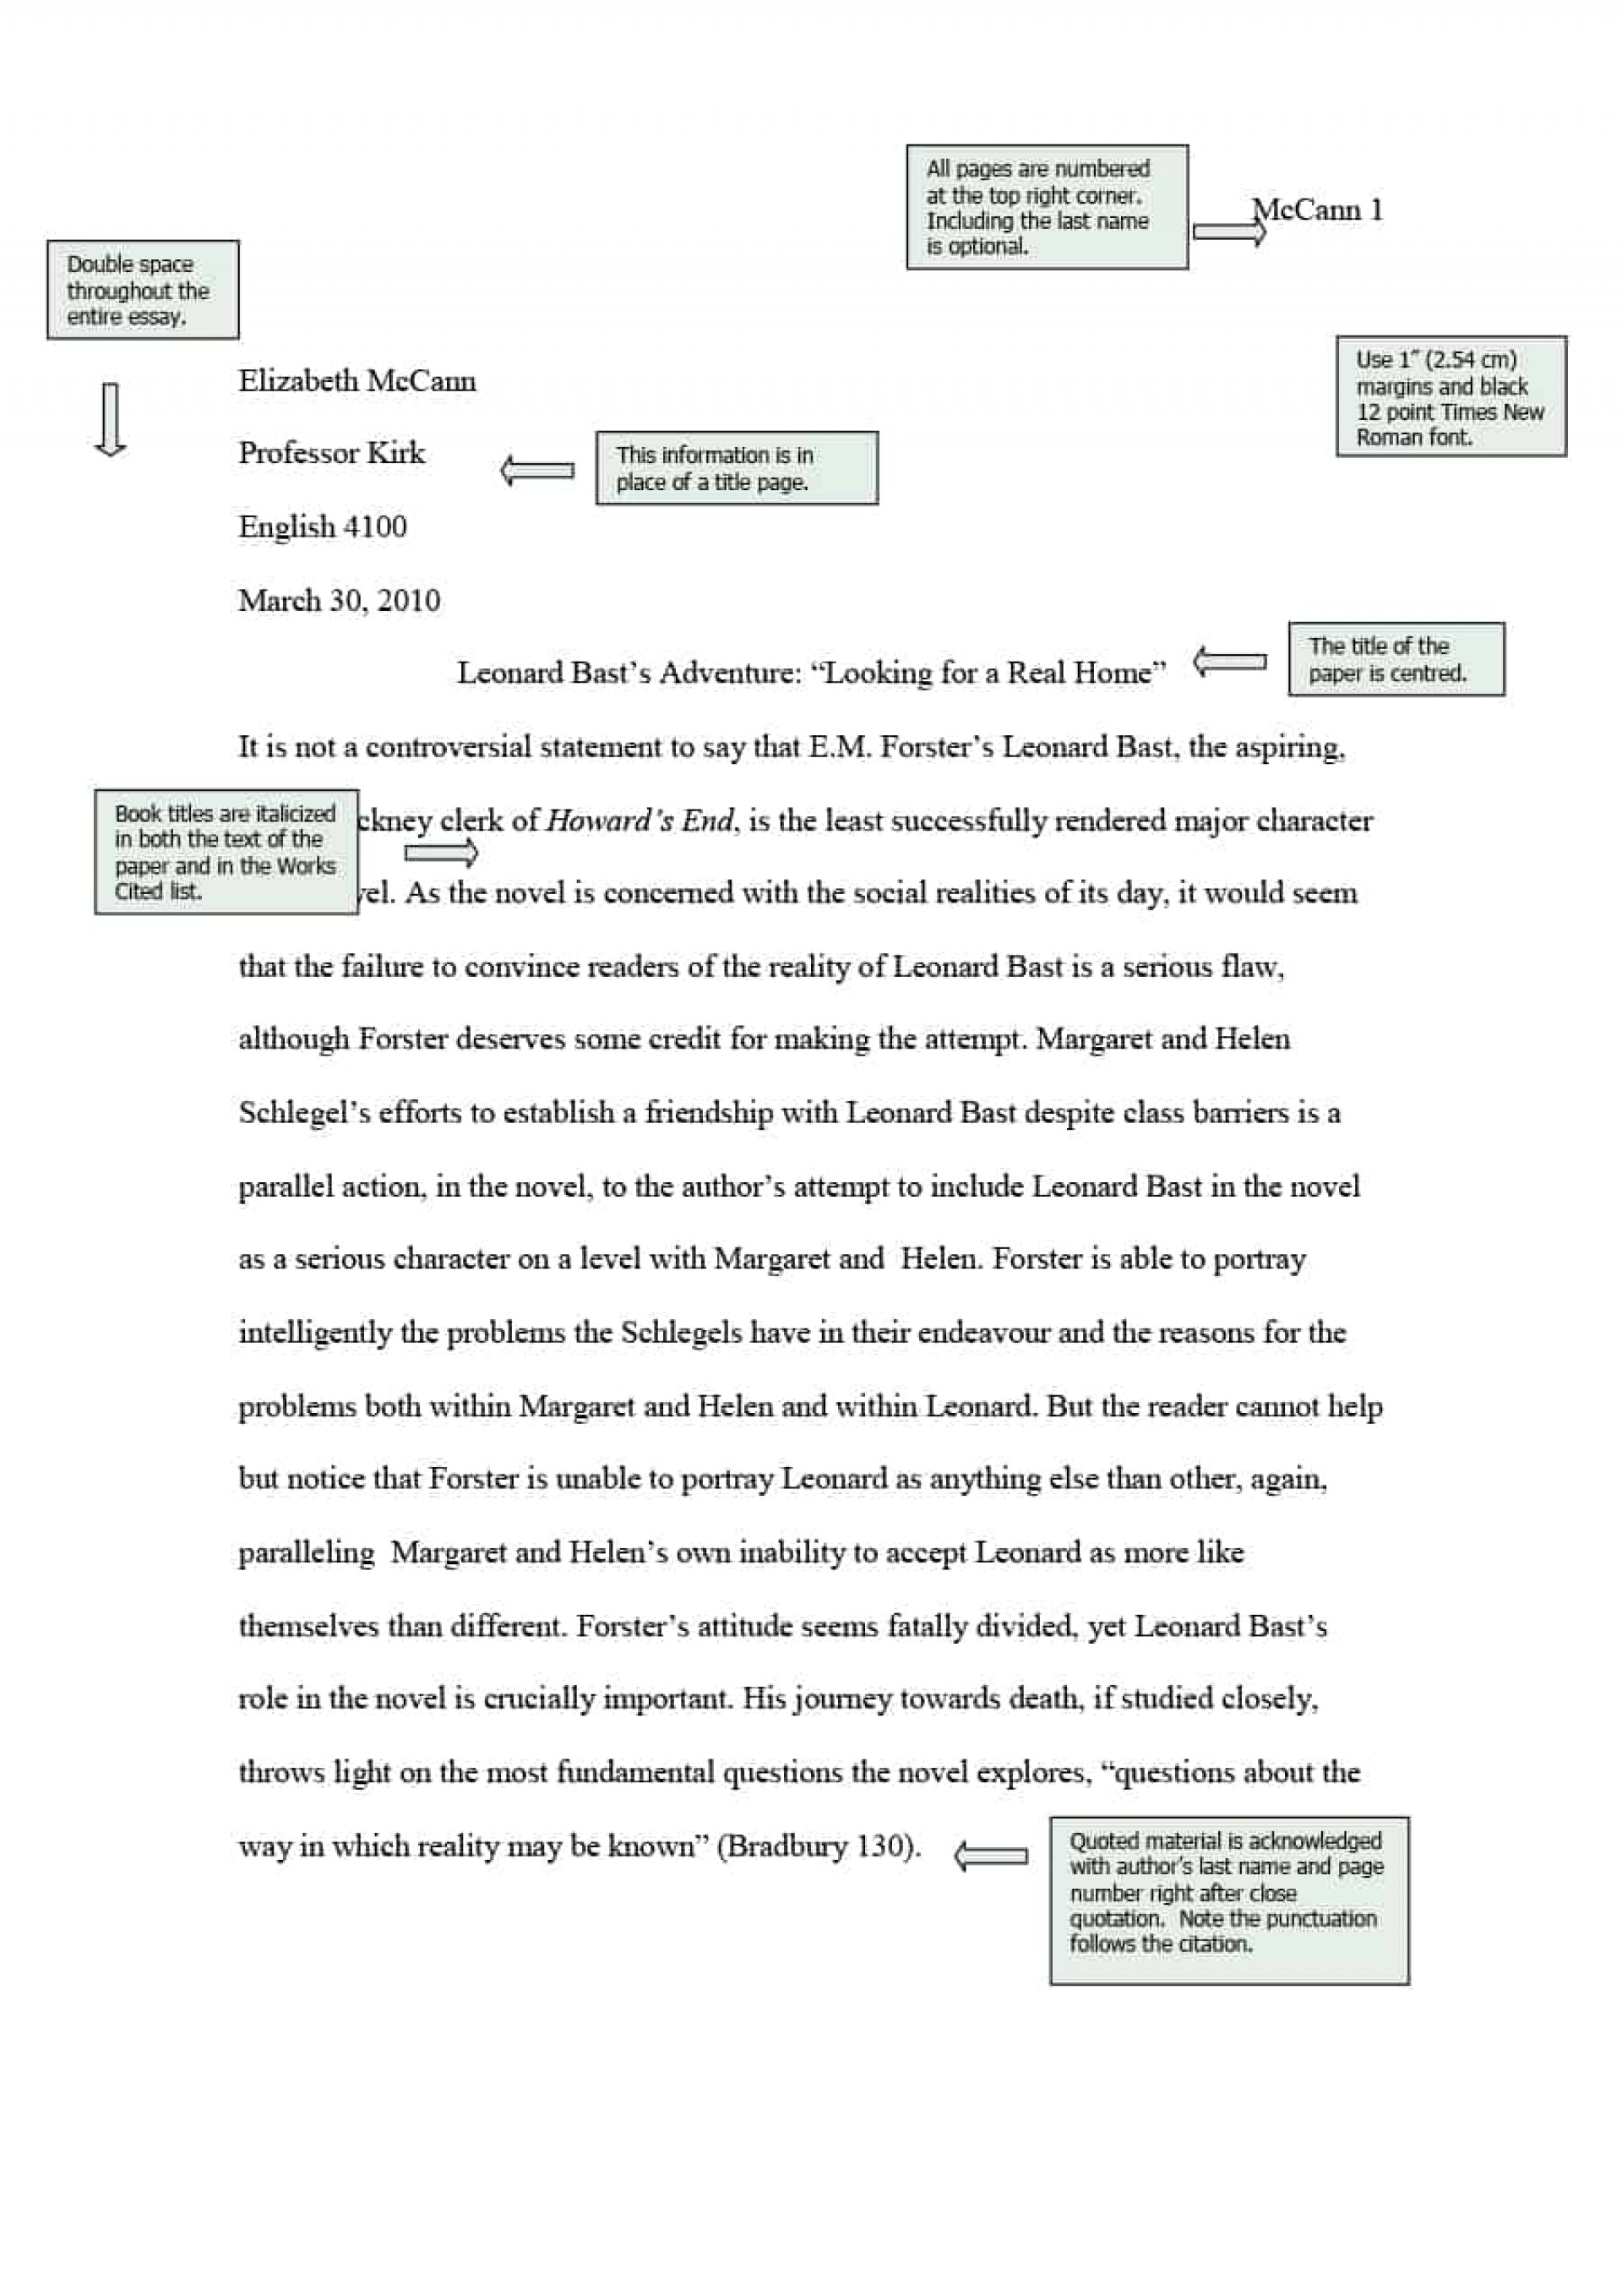 005 Essay Format Mla Template Awful Examples Citation Generator Outline 1920